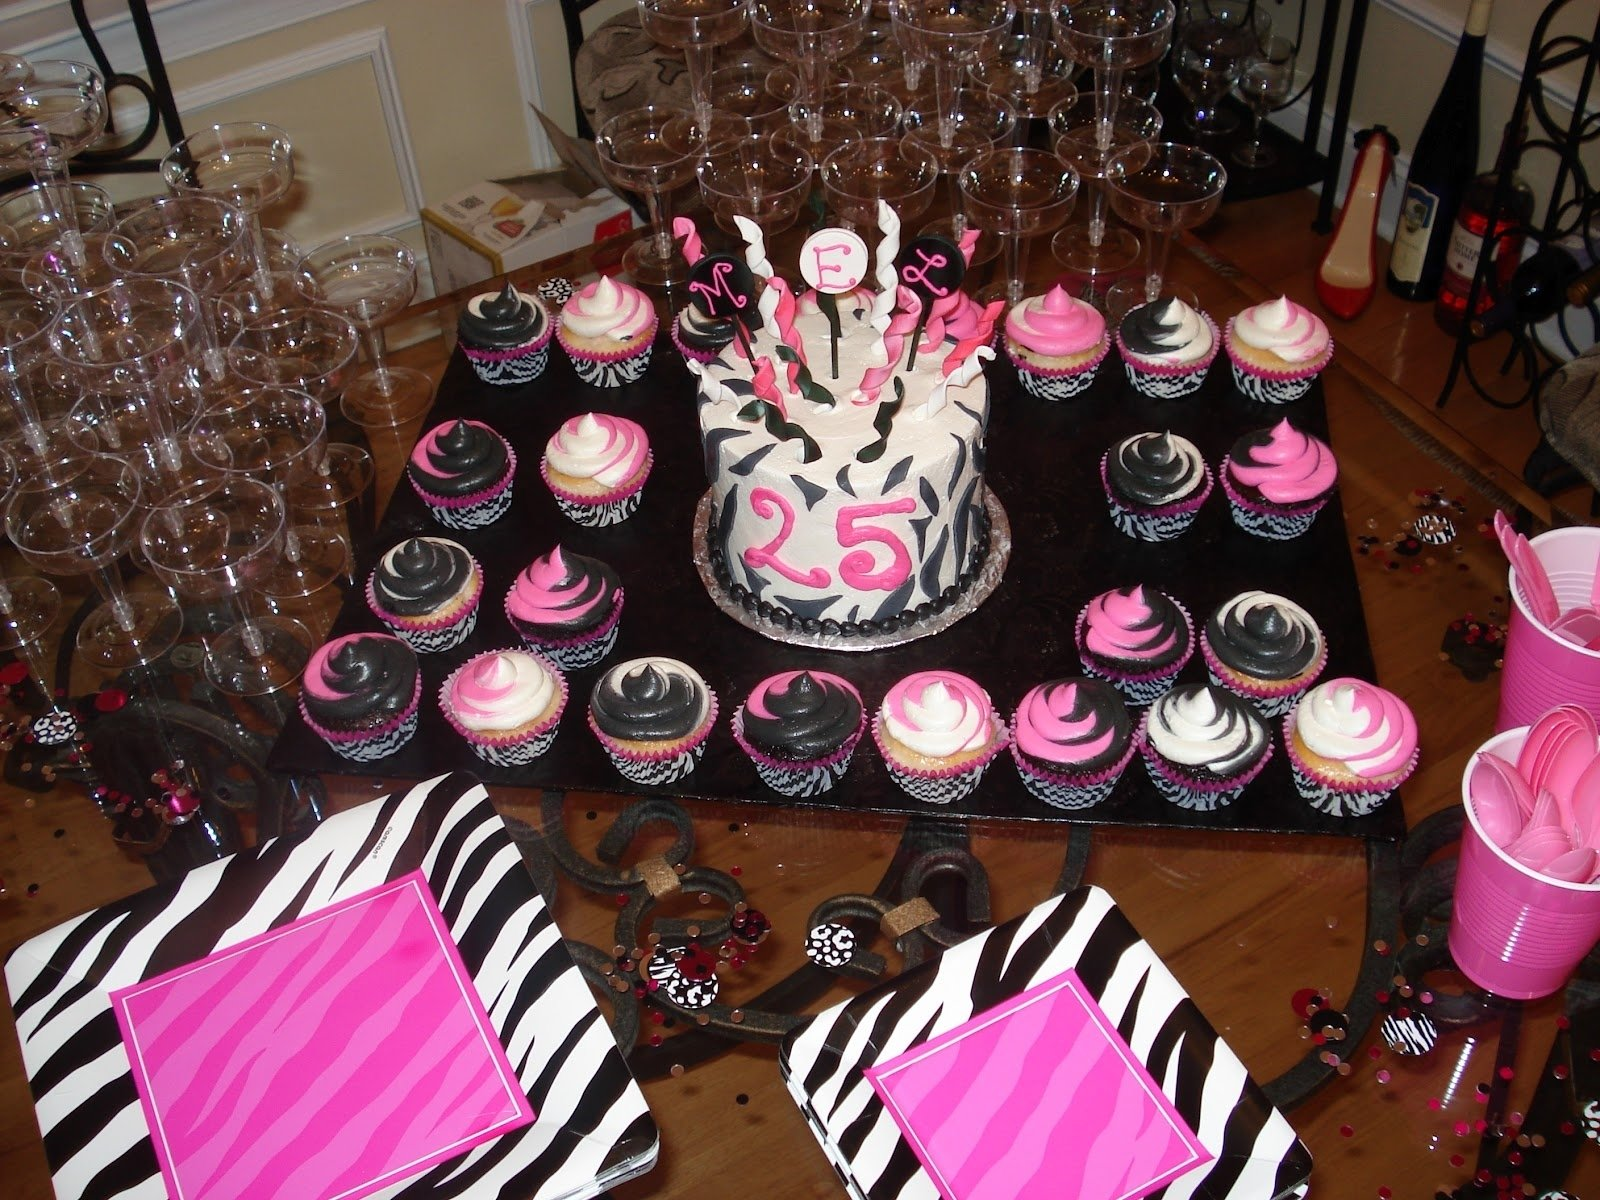 10 Spectacular Ideas For 25Th Birthday Party 25th birthday party ideas at home criolla brithday wedding fun 2020